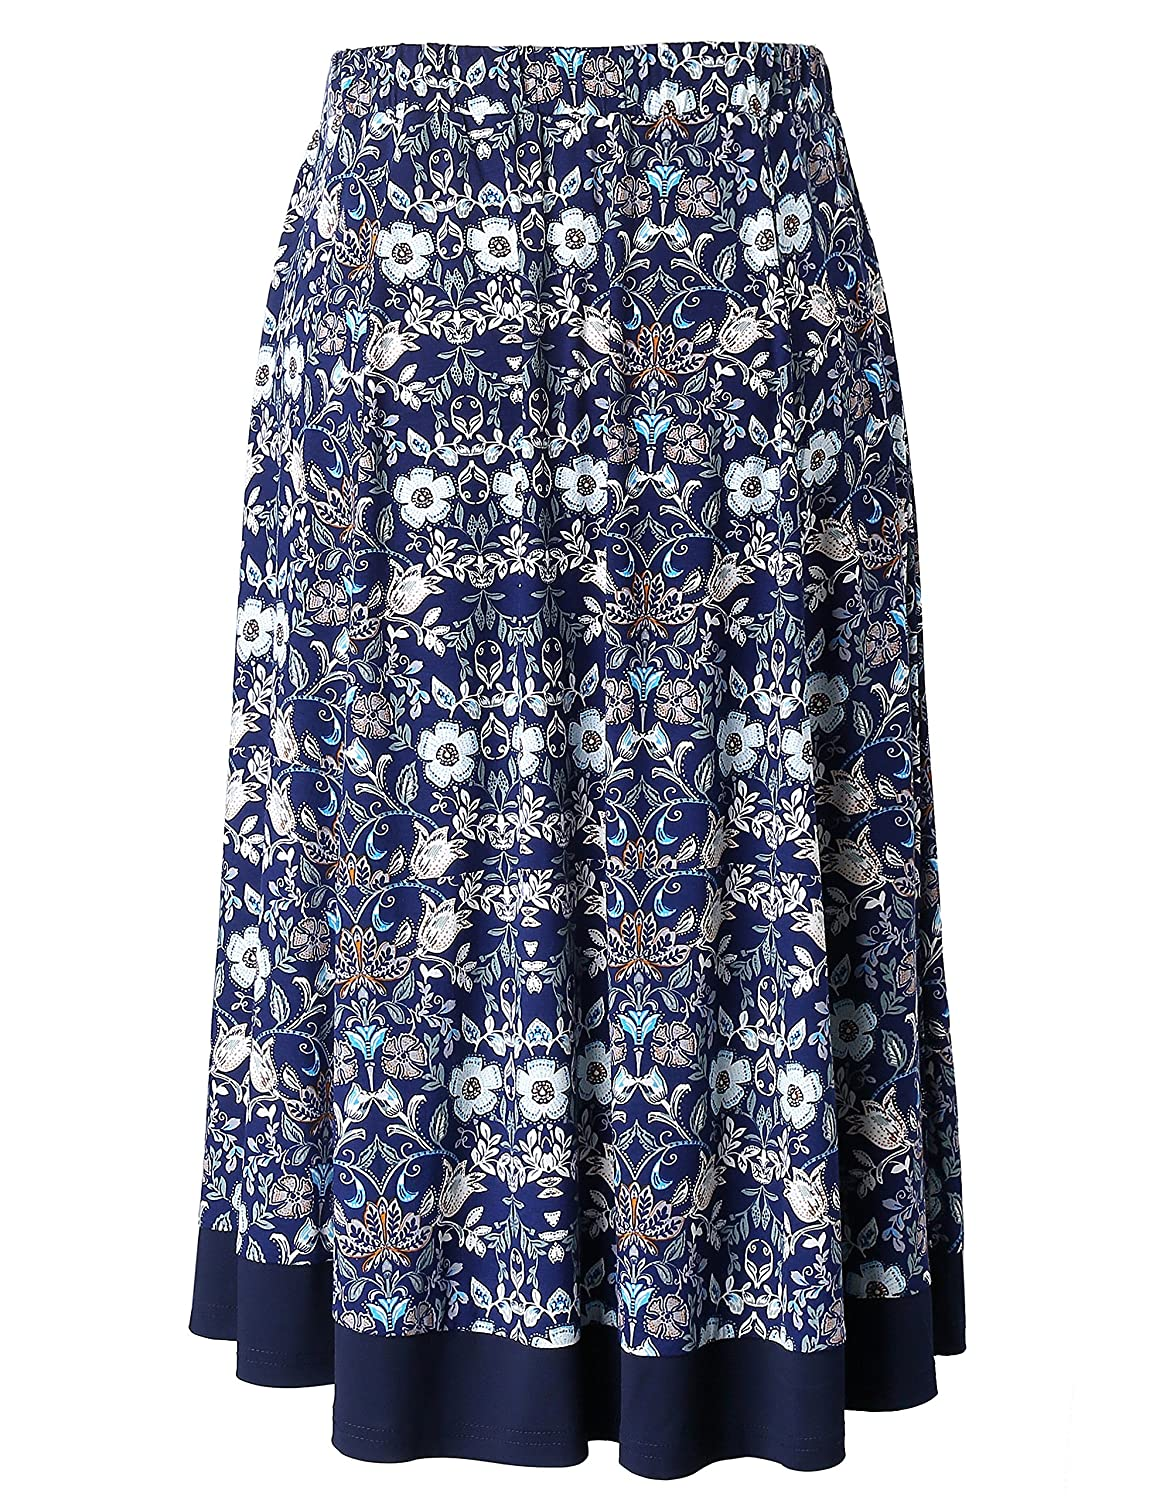 Chicwe Womens Plus Size Flared Elastic Waist Skirt with Calf Length 1X-4X